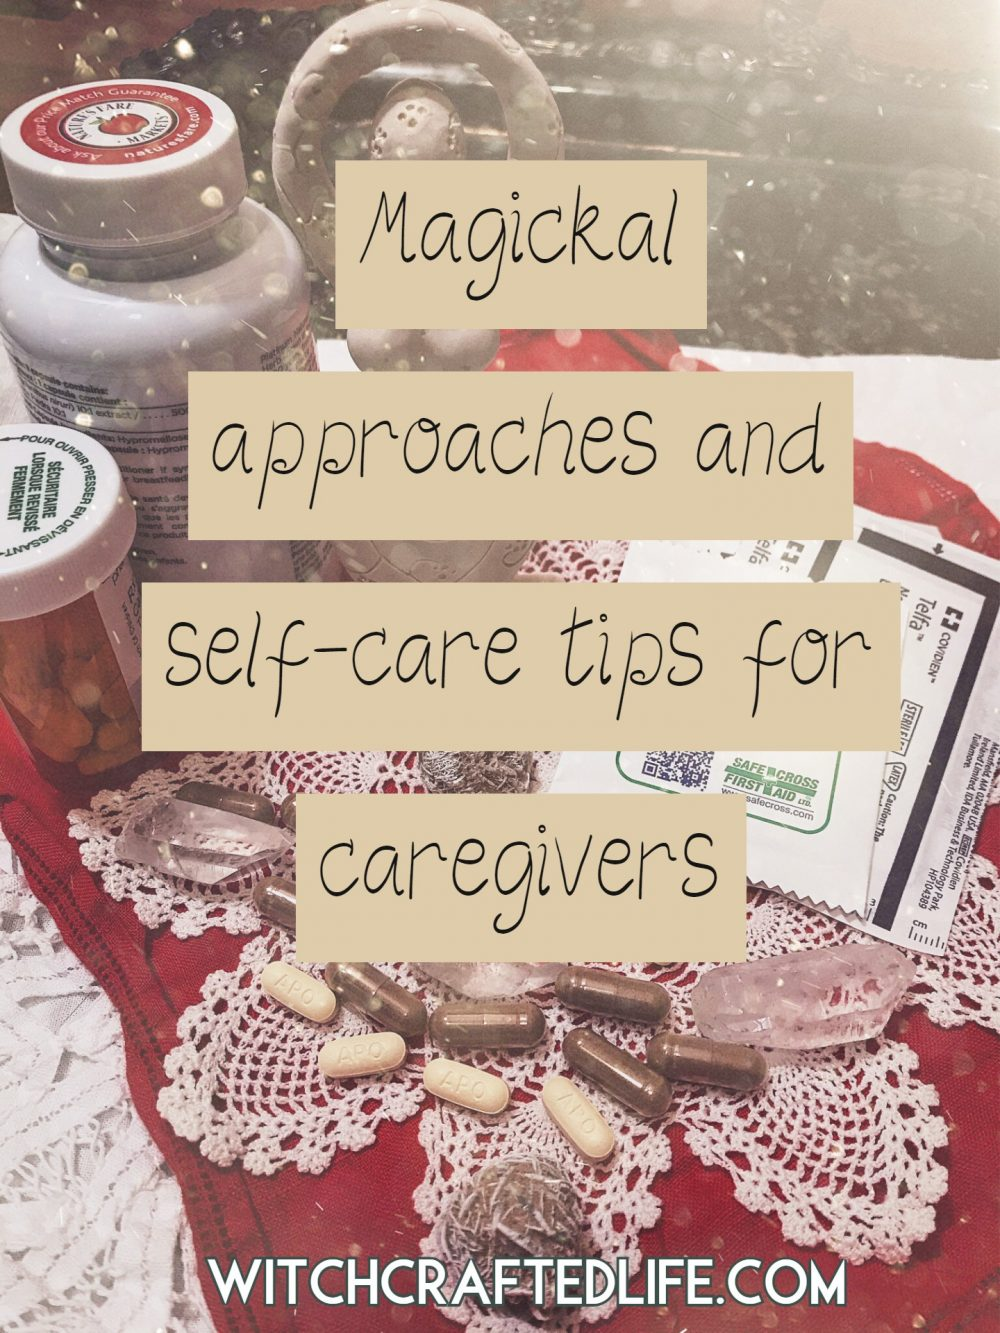 Magicka approaches and self-care tips for caregivers